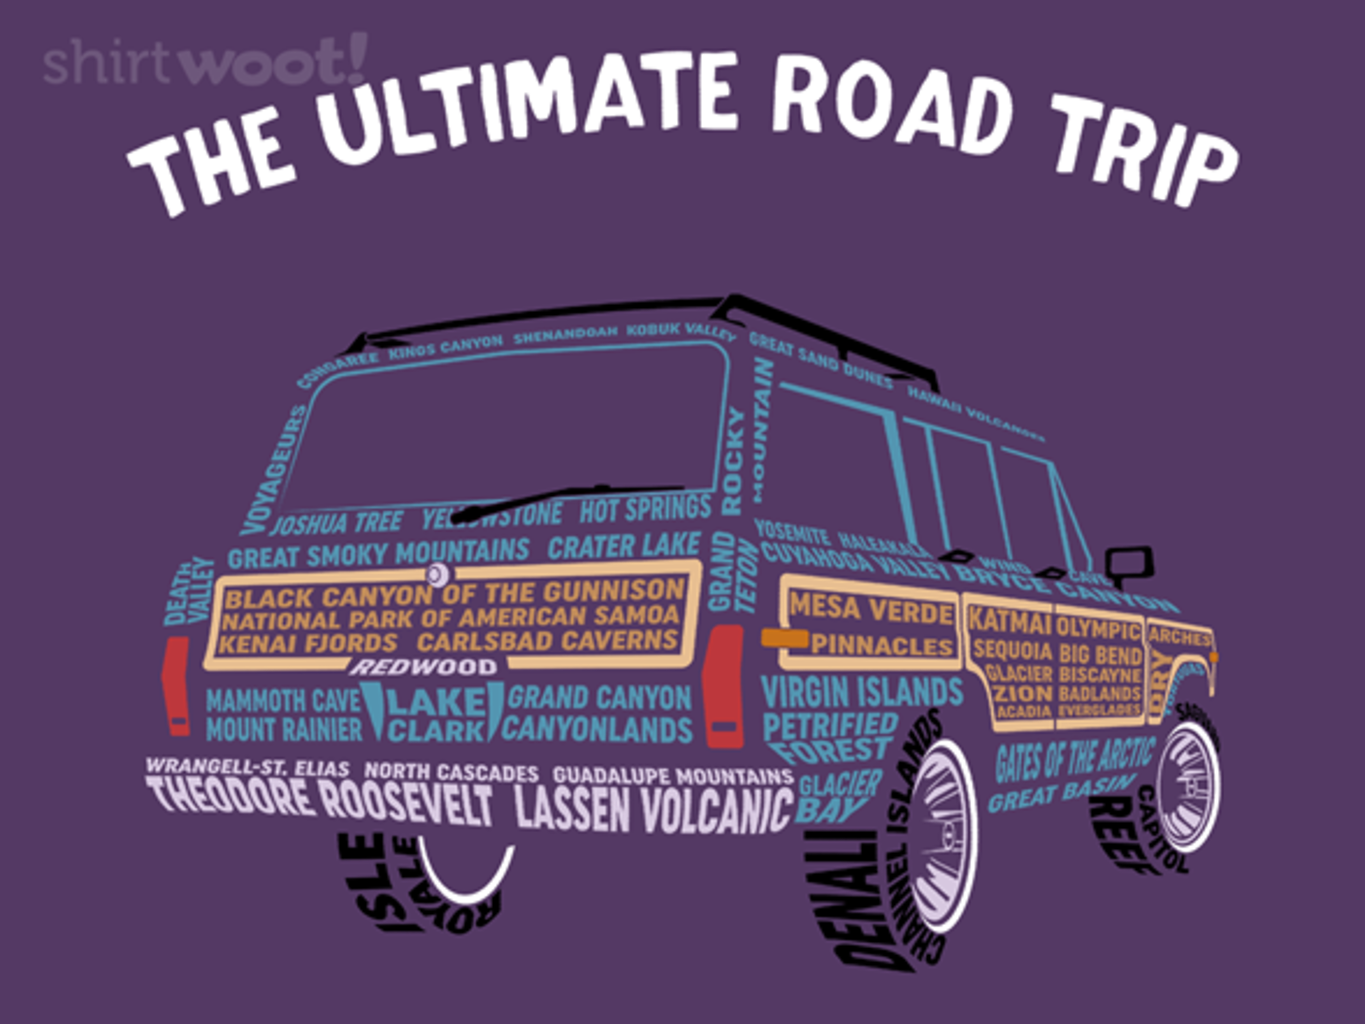 Woot!: The Ultimate Road Trip